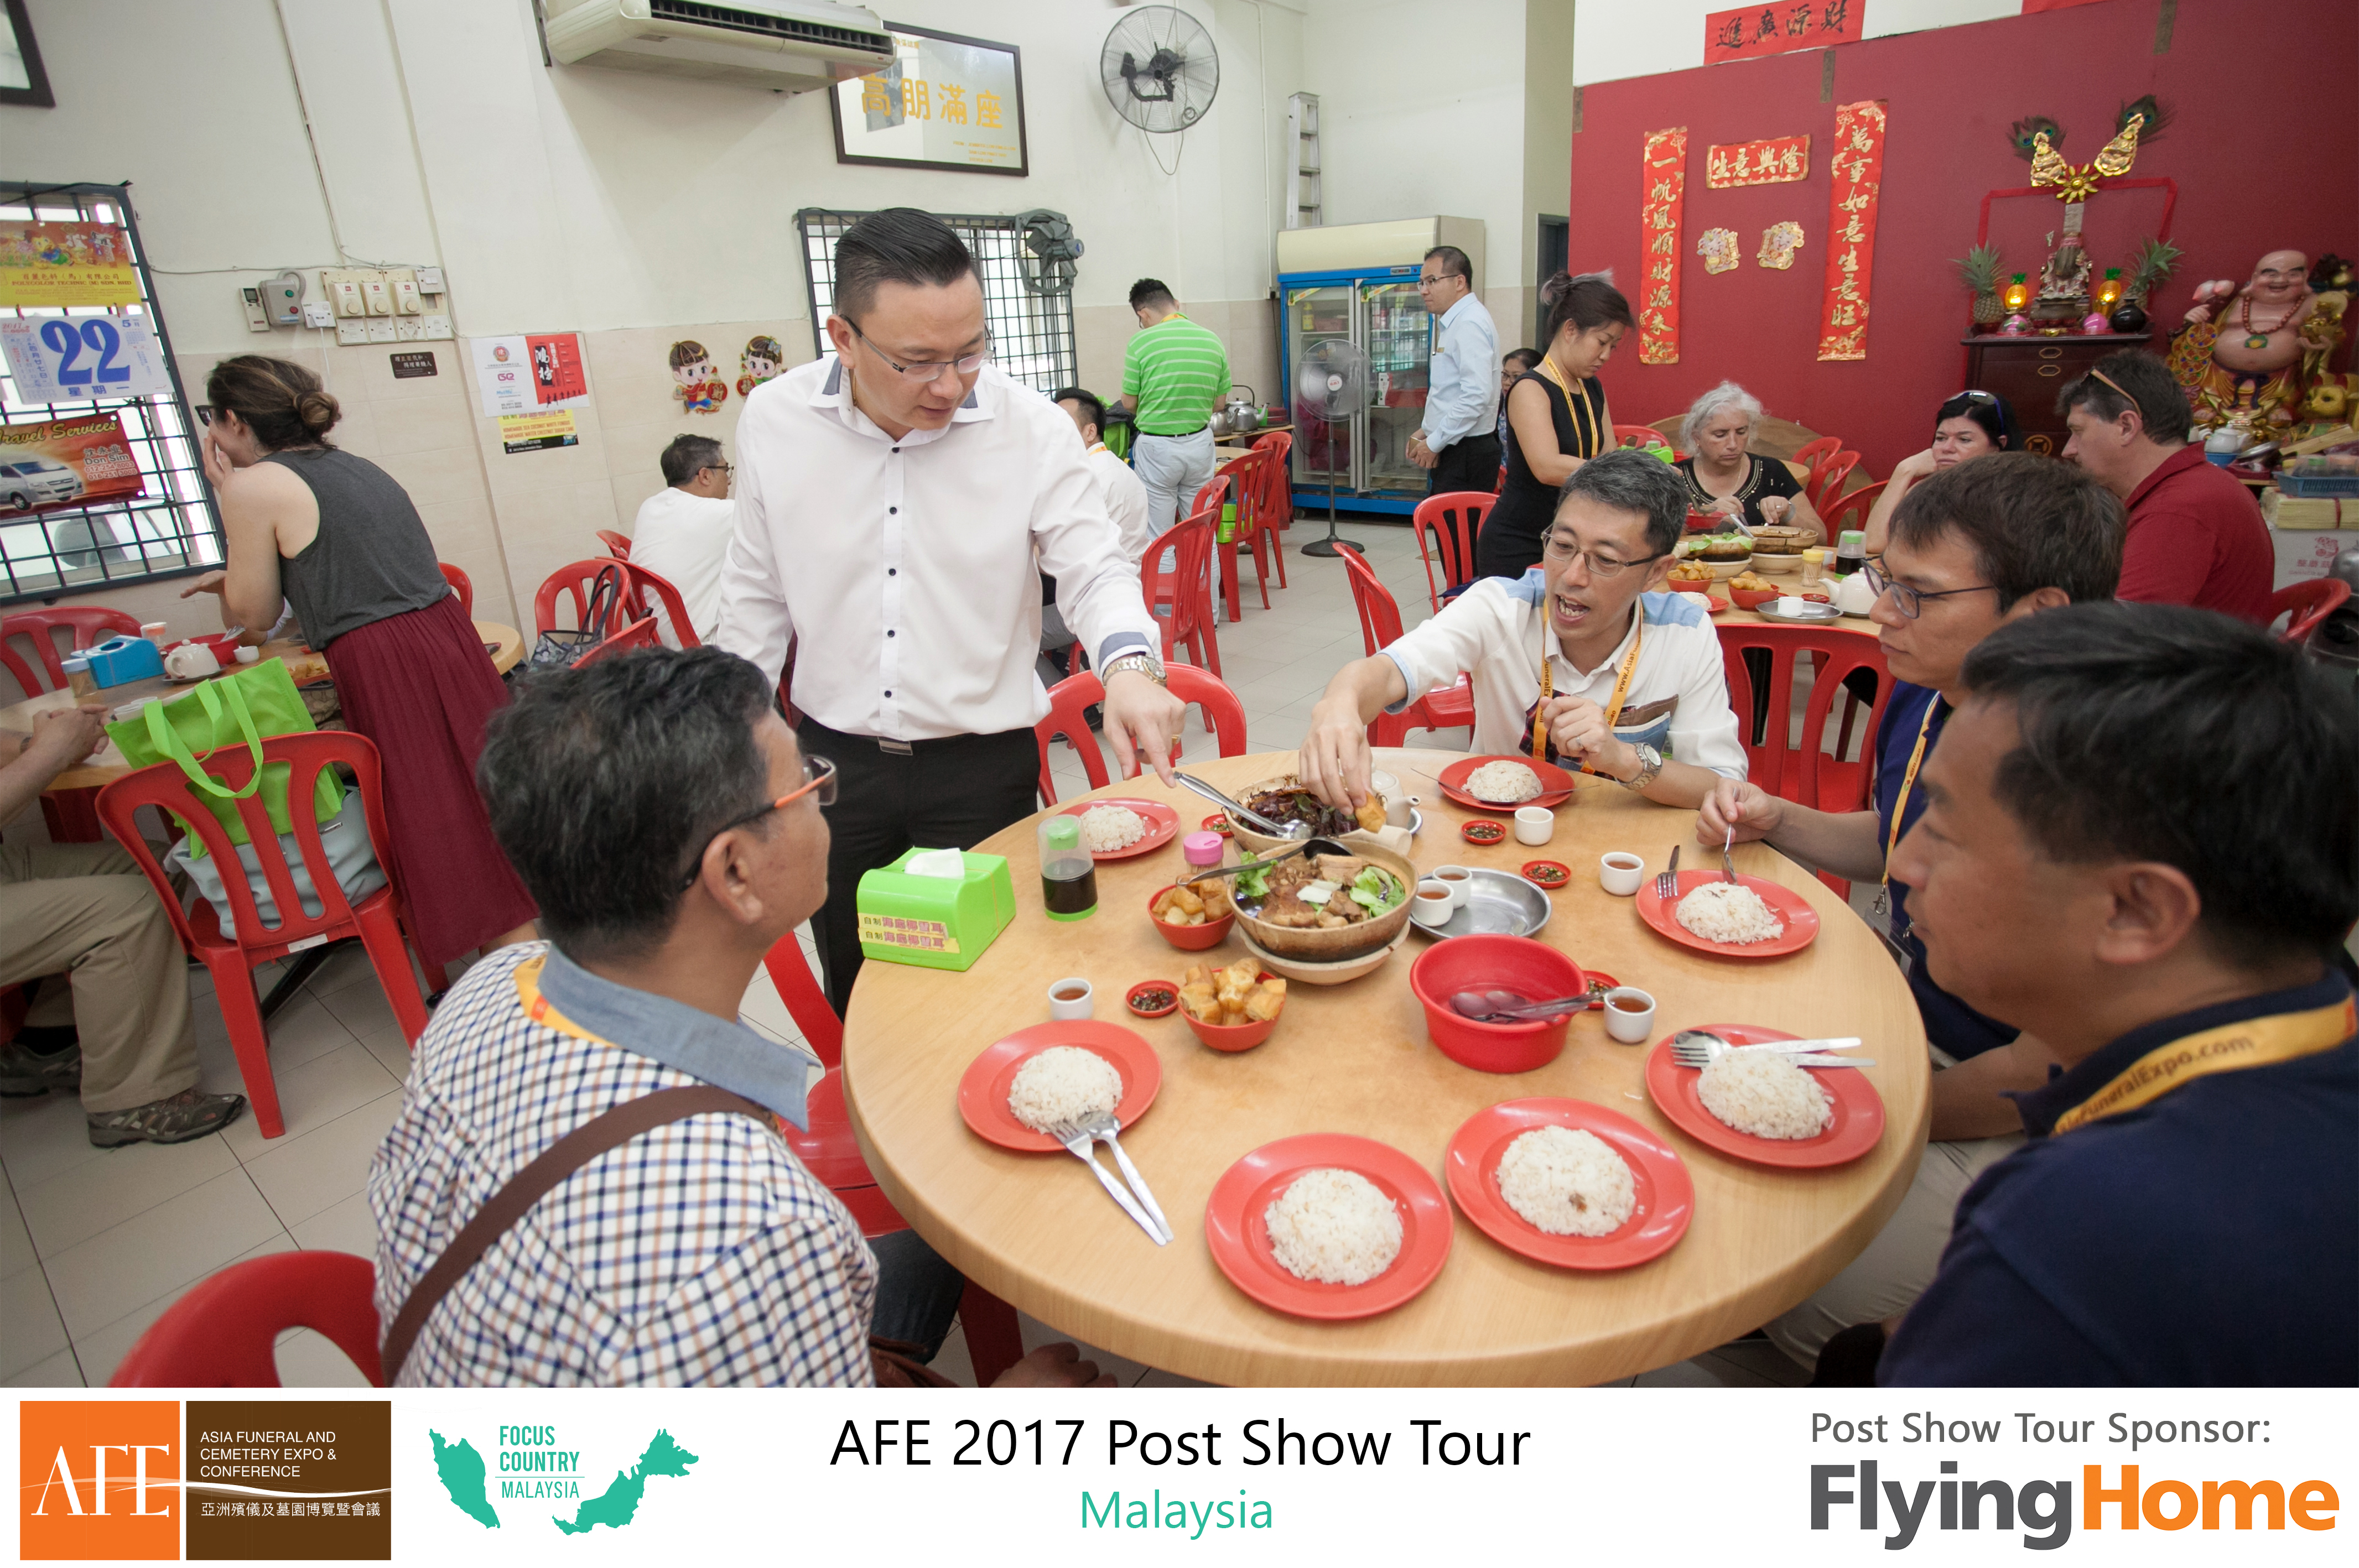 AFE Post Show Tour 2017 Day 4 - 23